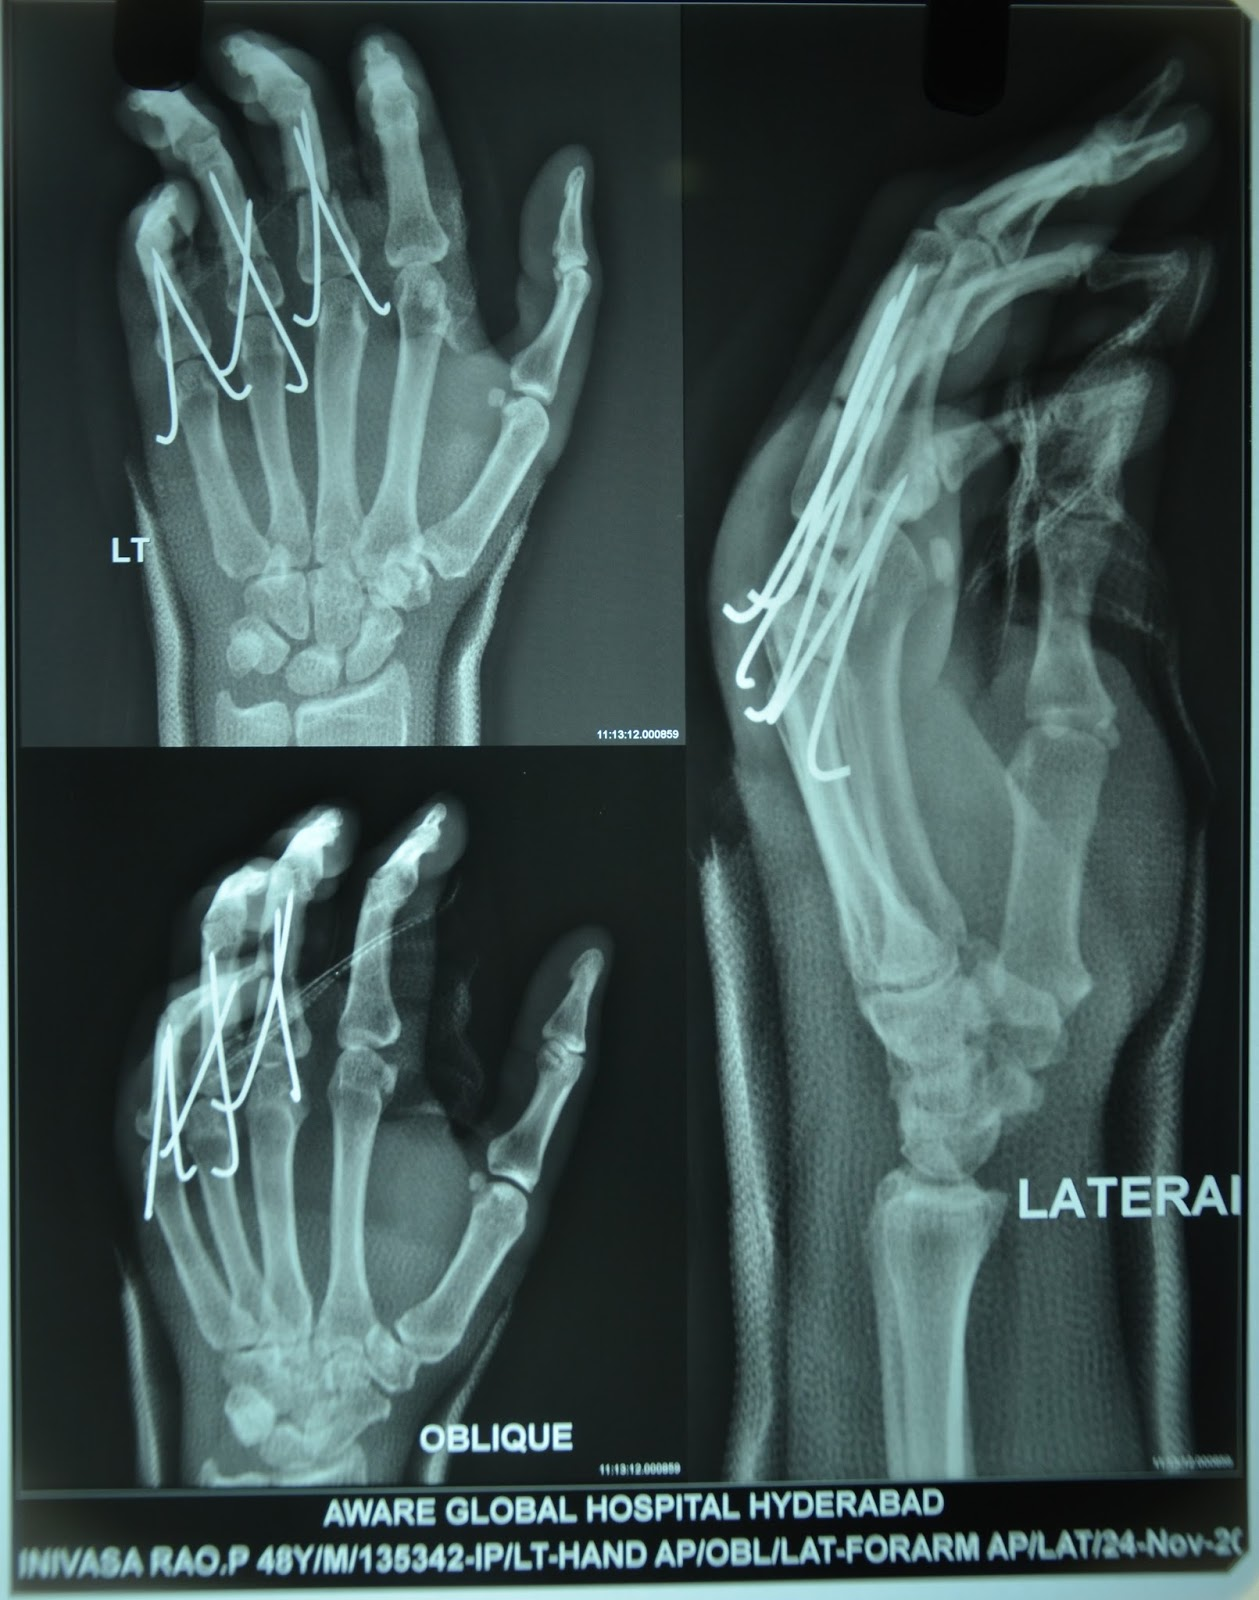 MAJOR CRUSH INJURY LEFT HAND WITH DISPLACED FRACTUURES OF PROXIMAL ...